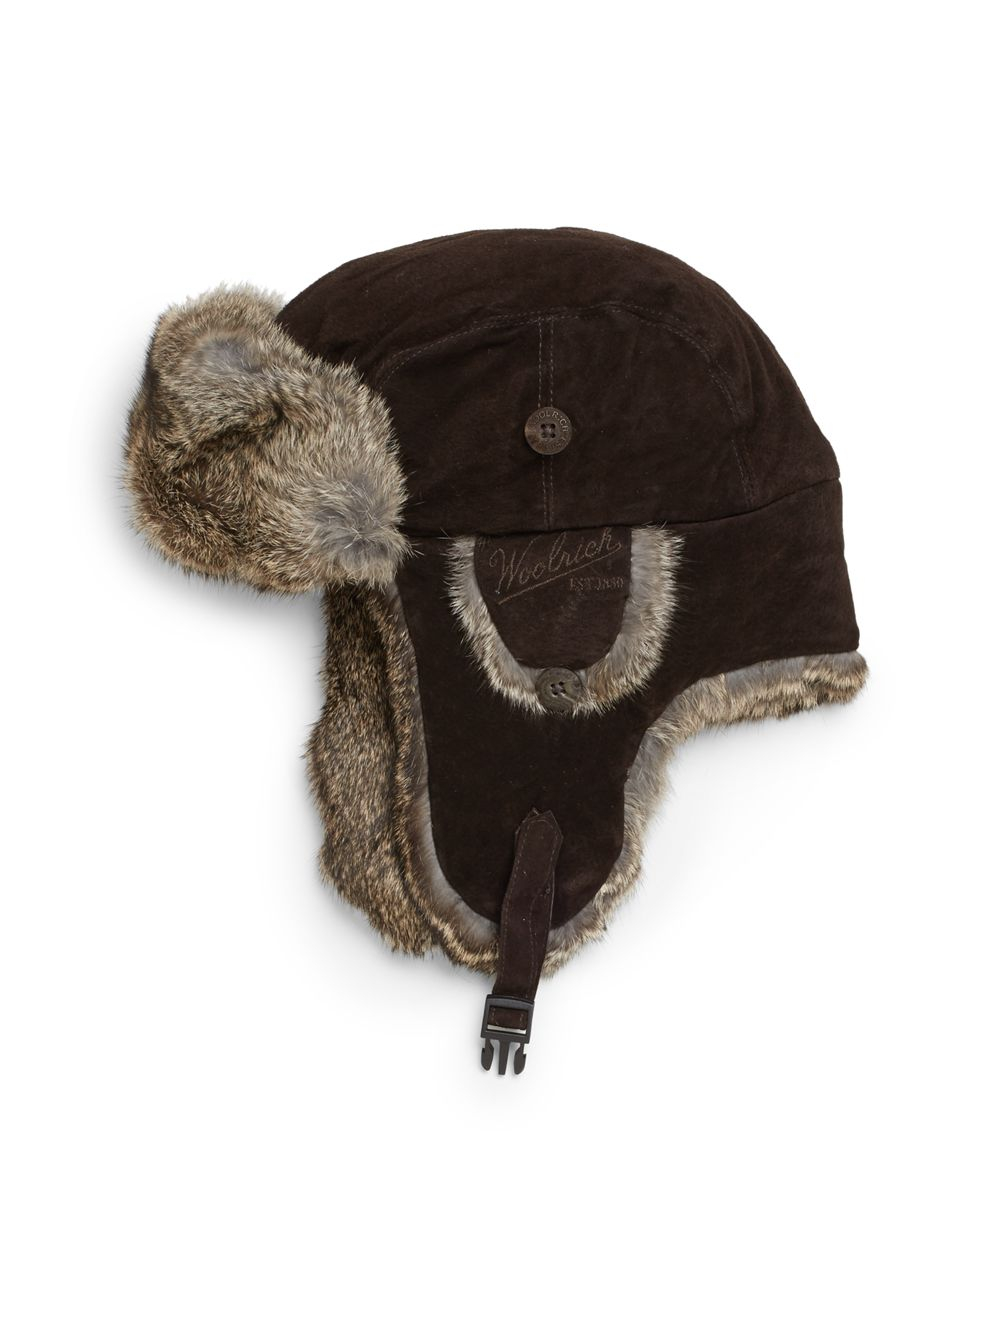 Lyst - Woolrich Suede Rabbit Fur Trapper Hat in Brown for Men ce5180d2fddc